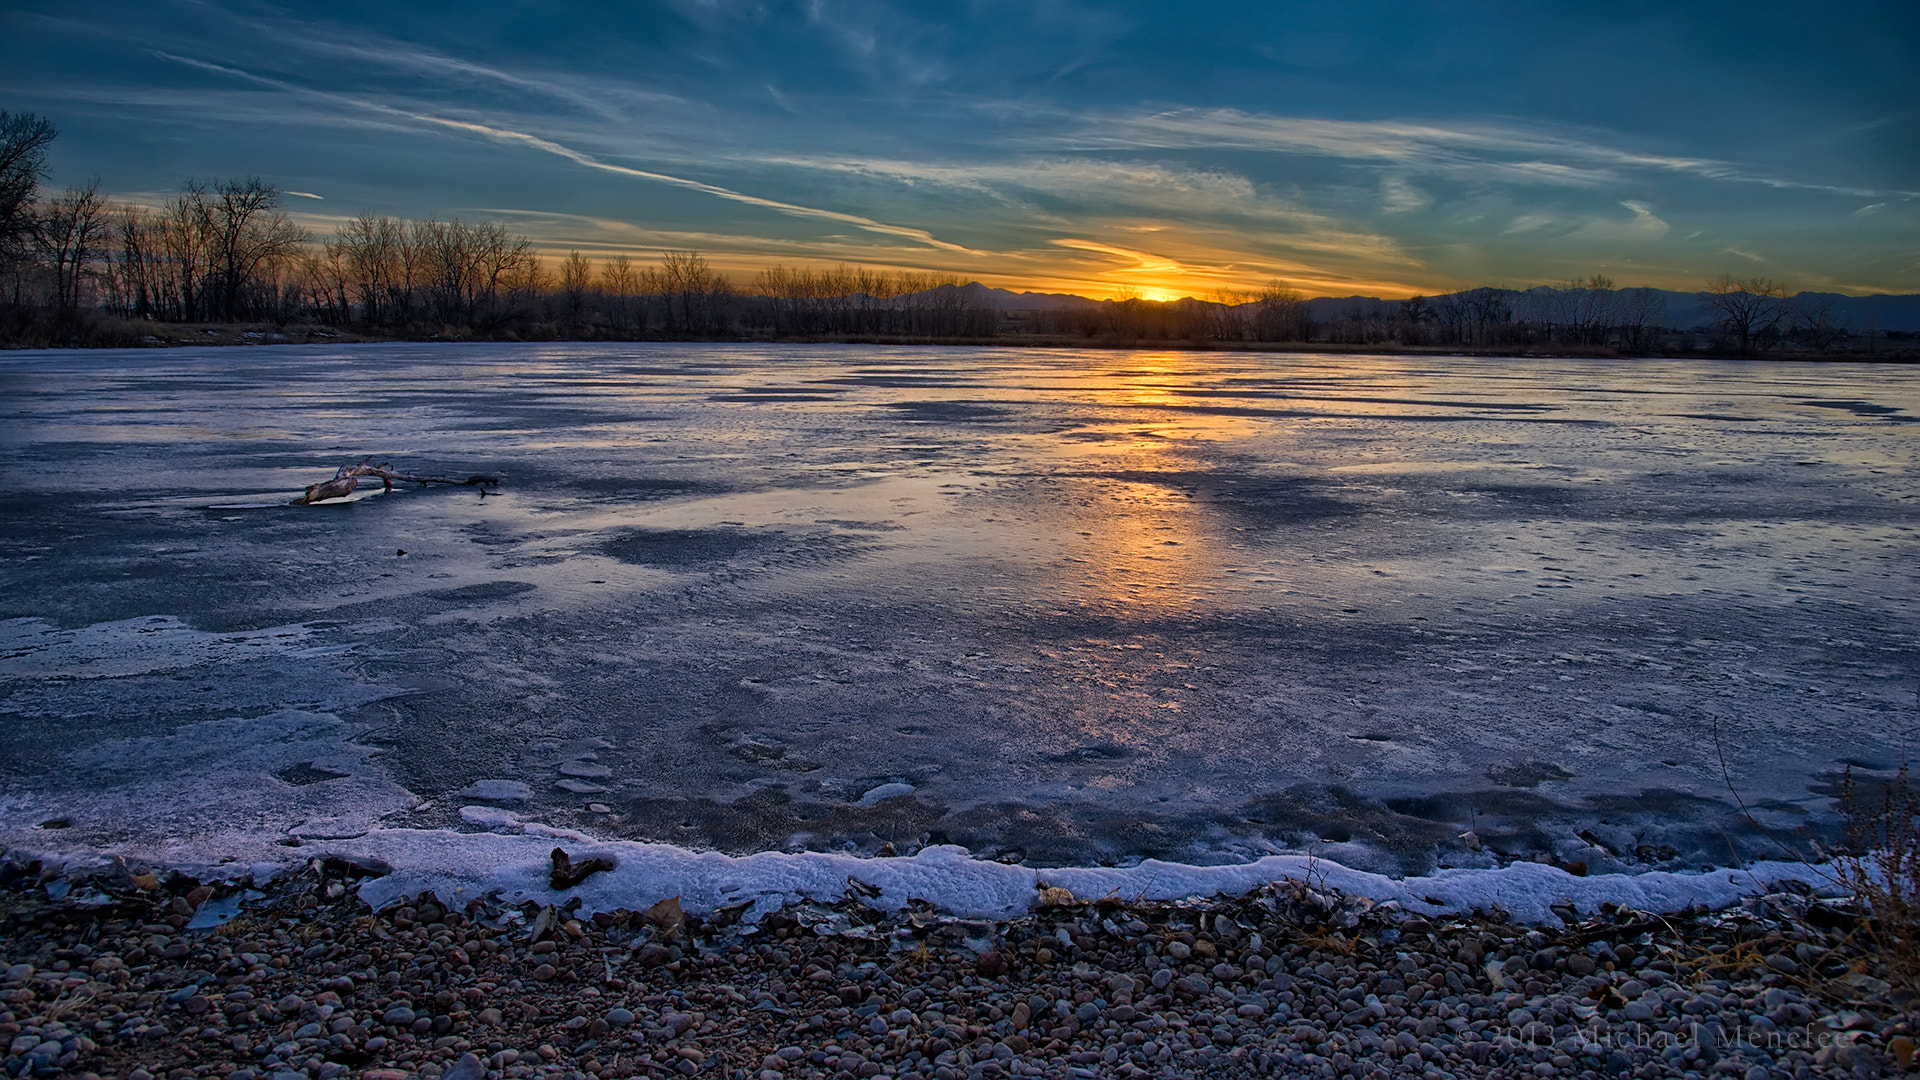 Photograph Cool Sunset Bro by Michael Menefee on 500px